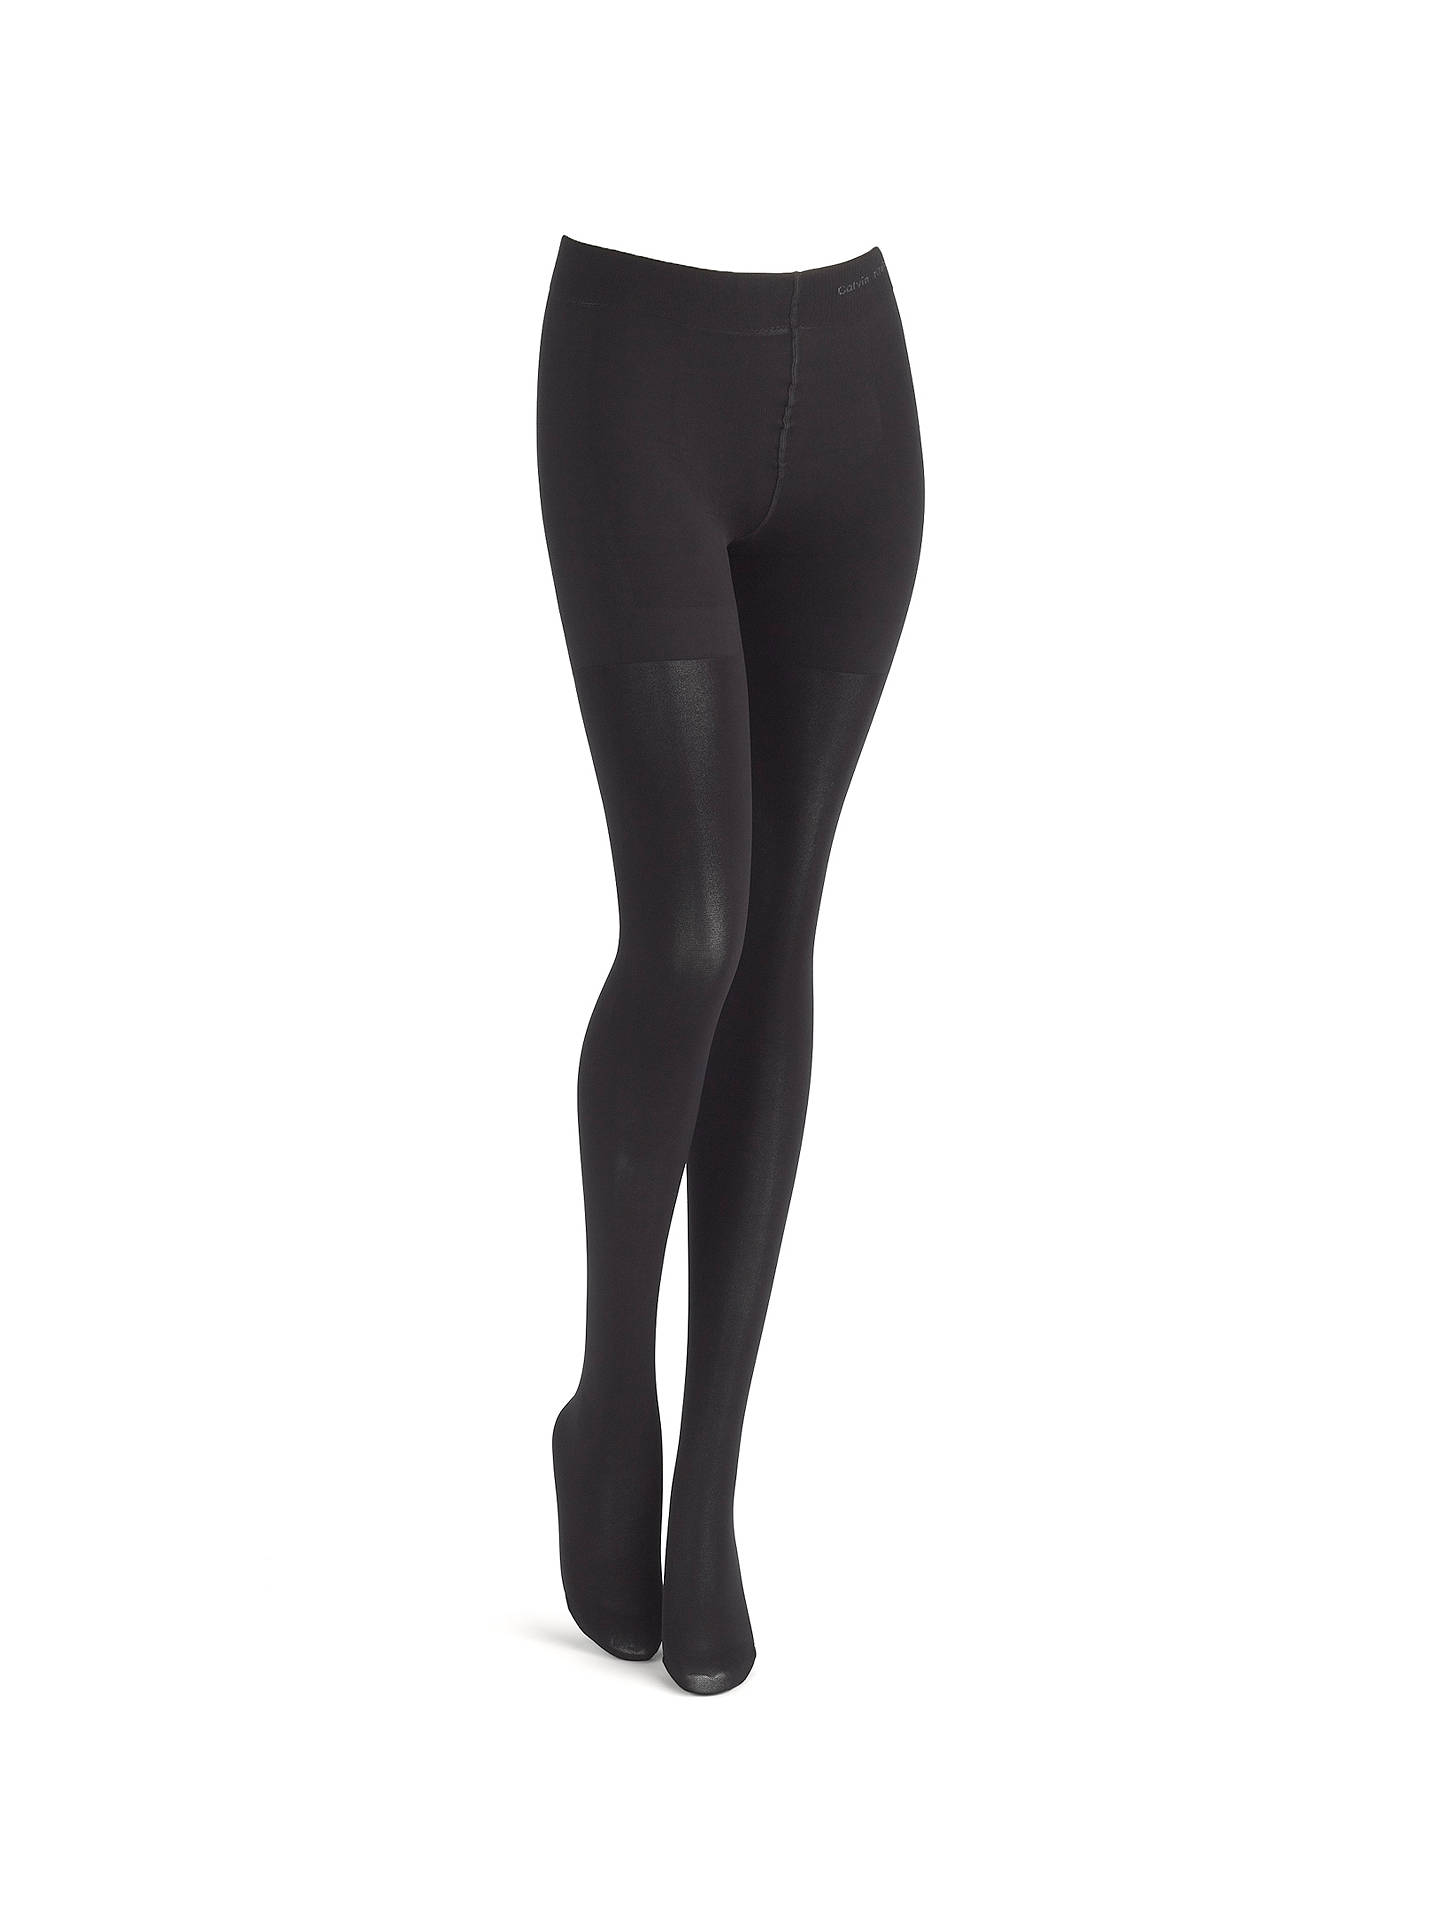 d69801ddb6d1e Buy Calvin Klein 80 Denier Ultra Fit Tights, Black, S Online at johnlewis.